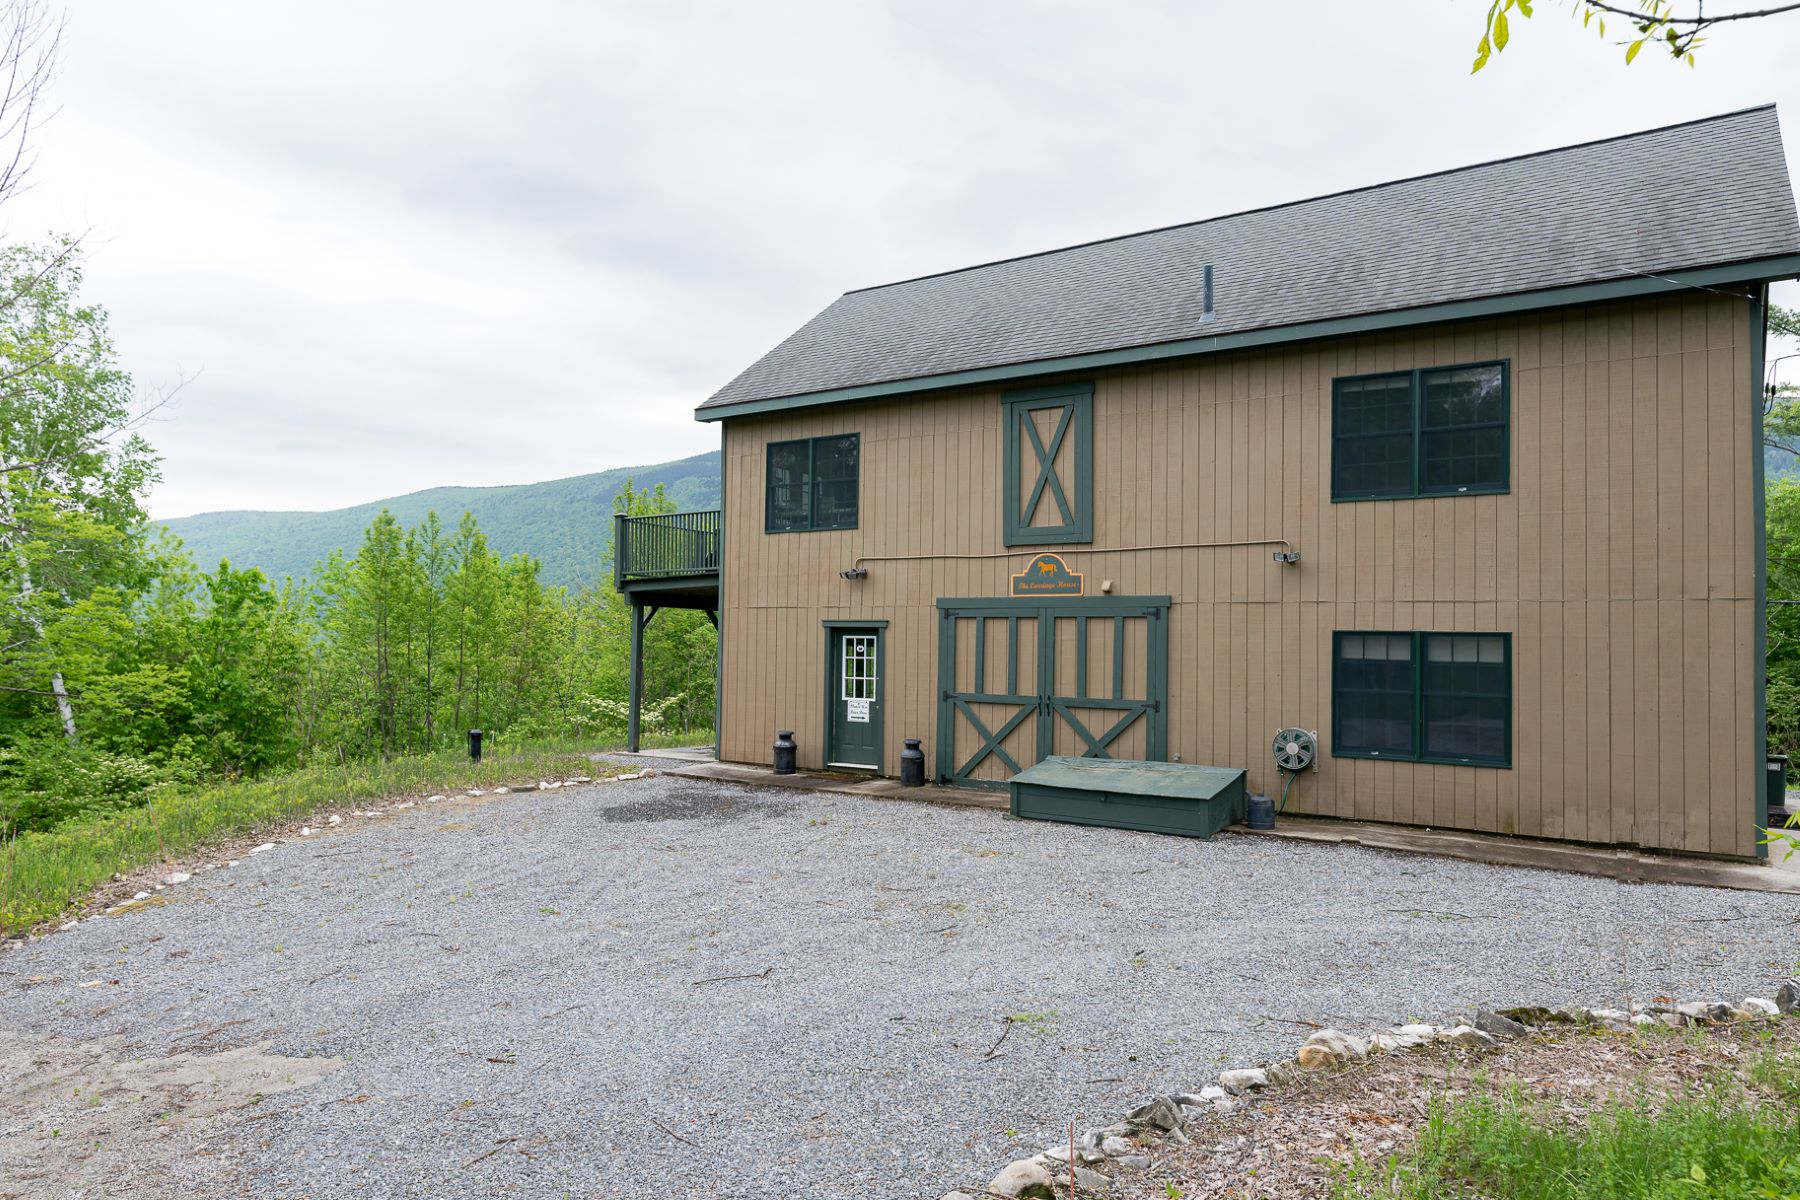 Single Family Homes for Sale at Charming Country Carriage House 831 Quarry Hill Rd Danby, Vermont 05739 United States